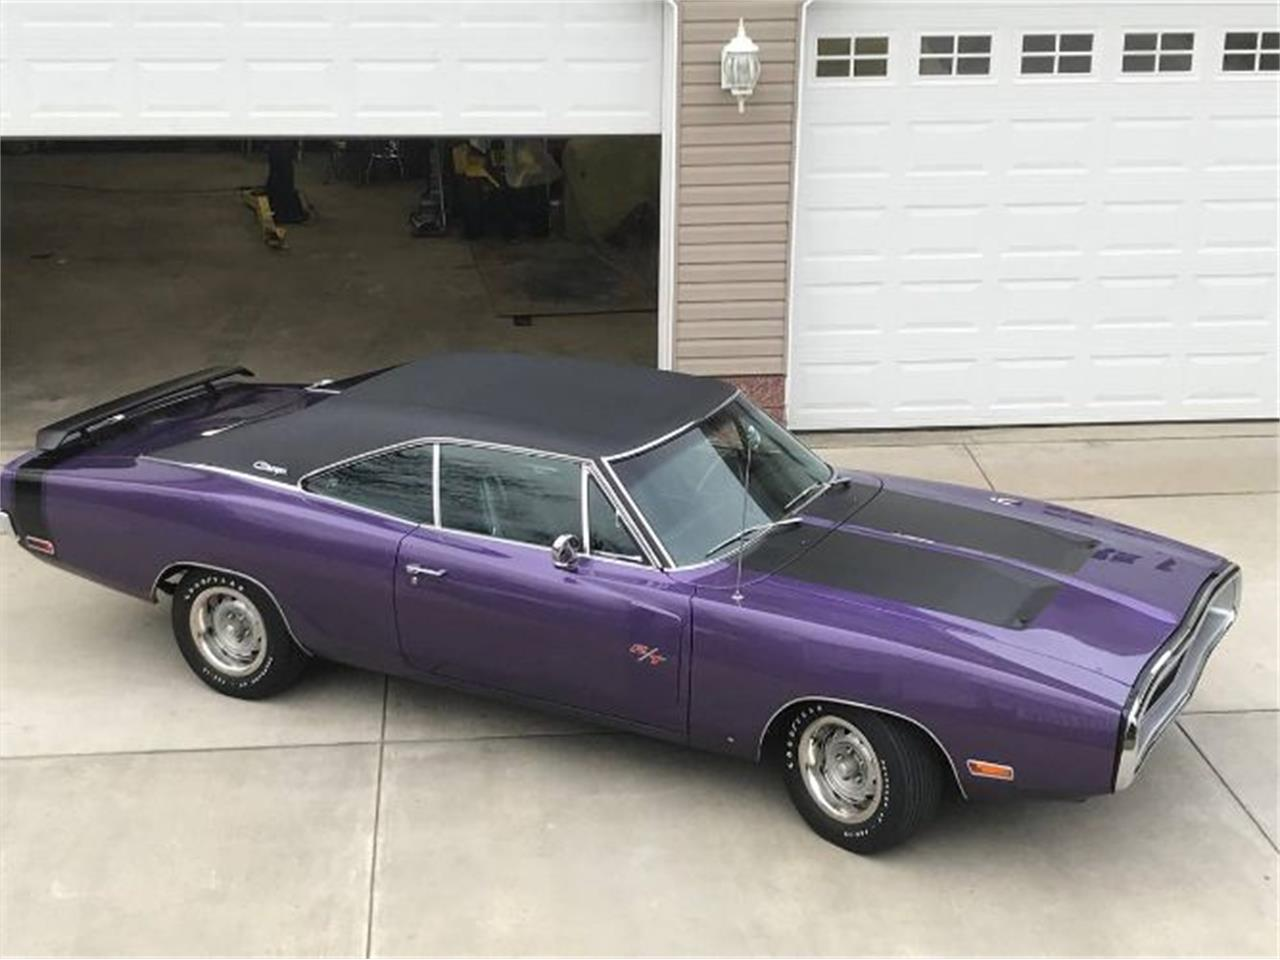 for sale 1970 dodge charger in cadillac, michigan cars - cadillac, mi at geebo